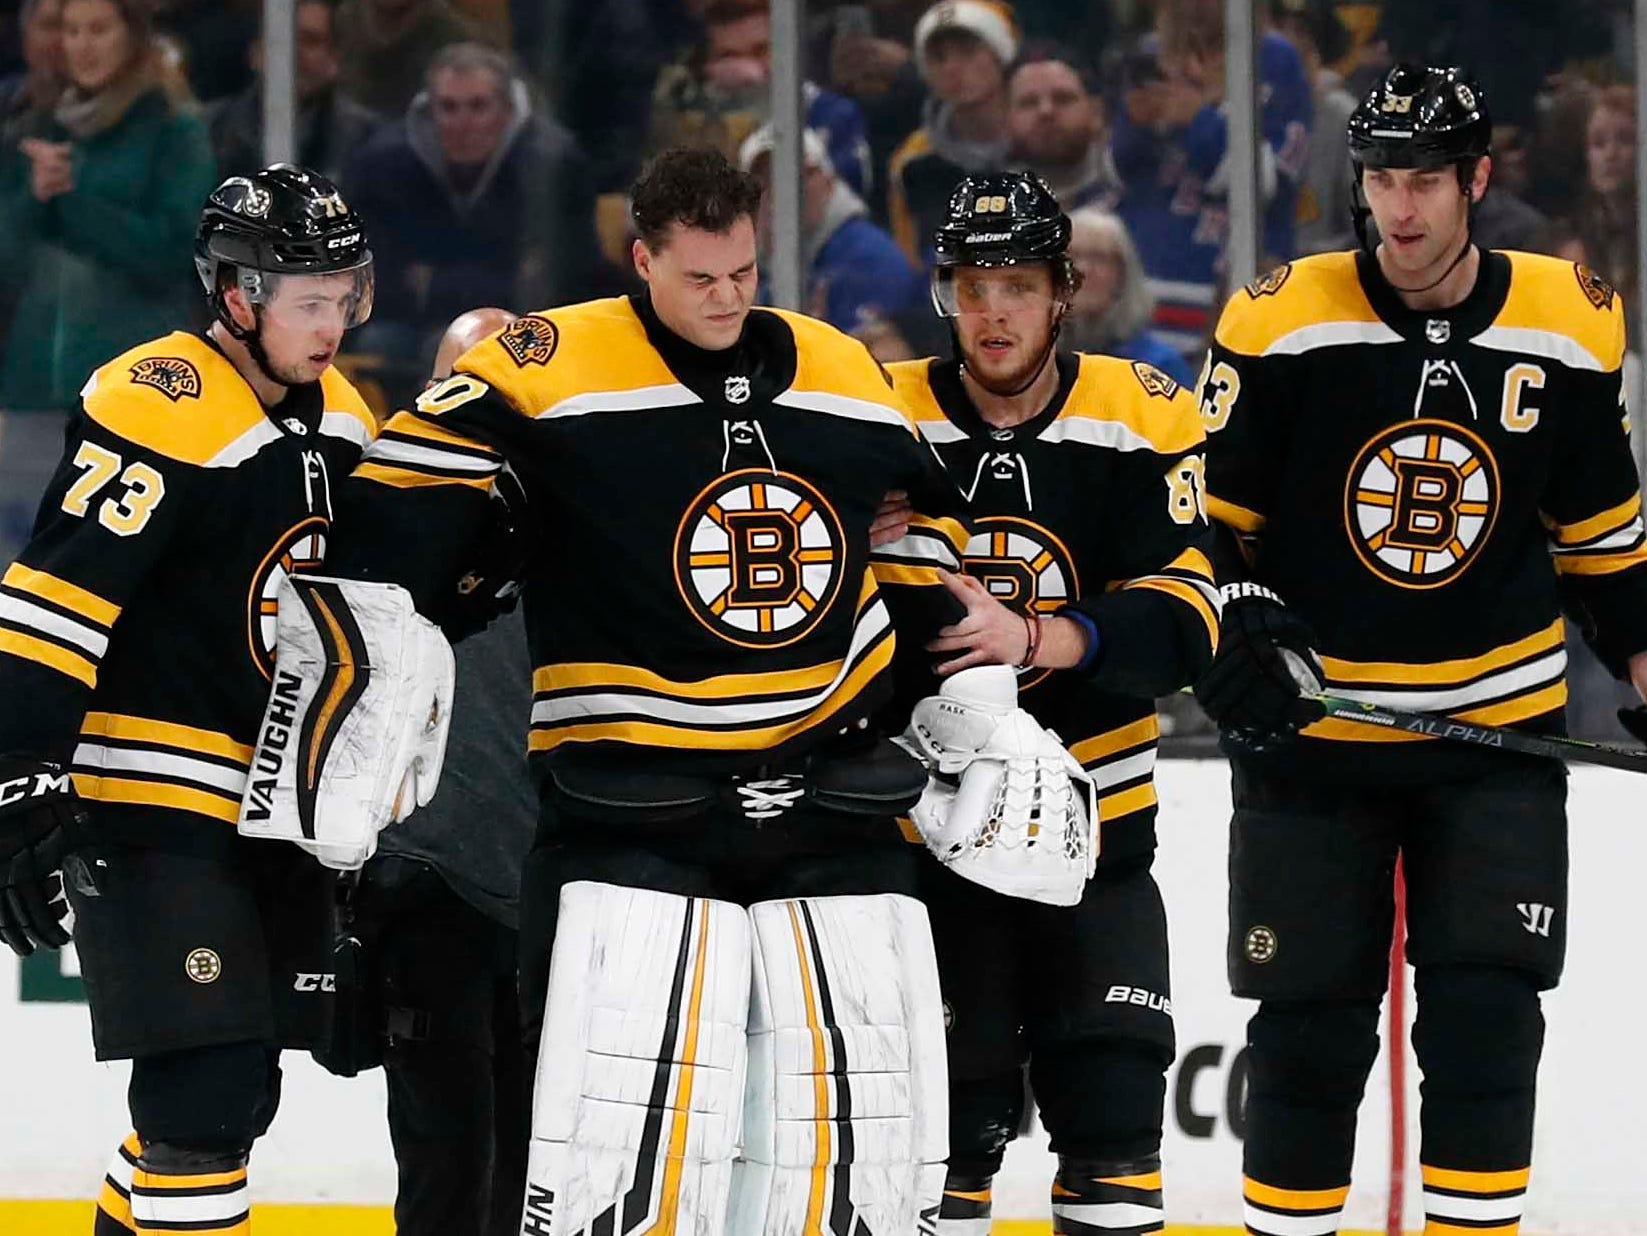 Jan. 19: Boston Bruins goaltender Tuukka Rask is helped off the ice after he was in a collision with New York Rangers center Filip Chytil. The Bruins said he suffered a concussion.